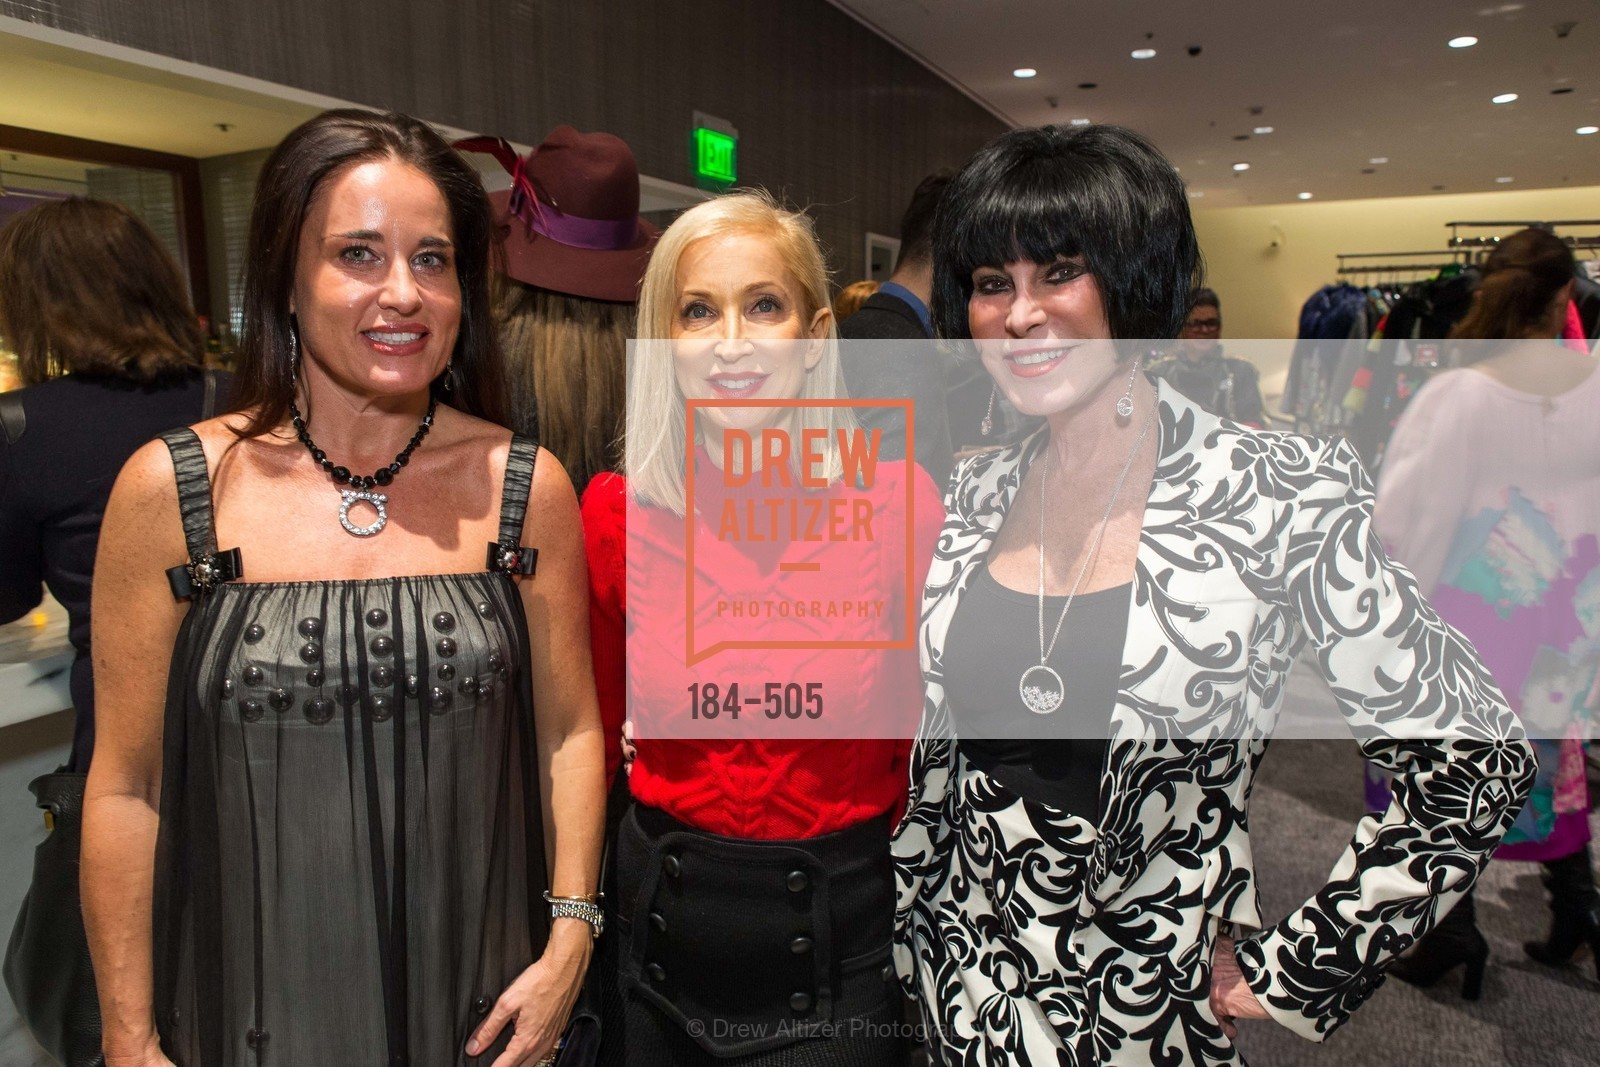 Natalia Urrutia, Shelley Gordon, Marilyn Cabak, Libertine Cocktail Party at Neiman Marcus, Neiman Marcus, November 10th, 2015,Drew Altizer, Drew Altizer Photography, full-service agency, private events, San Francisco photographer, photographer california